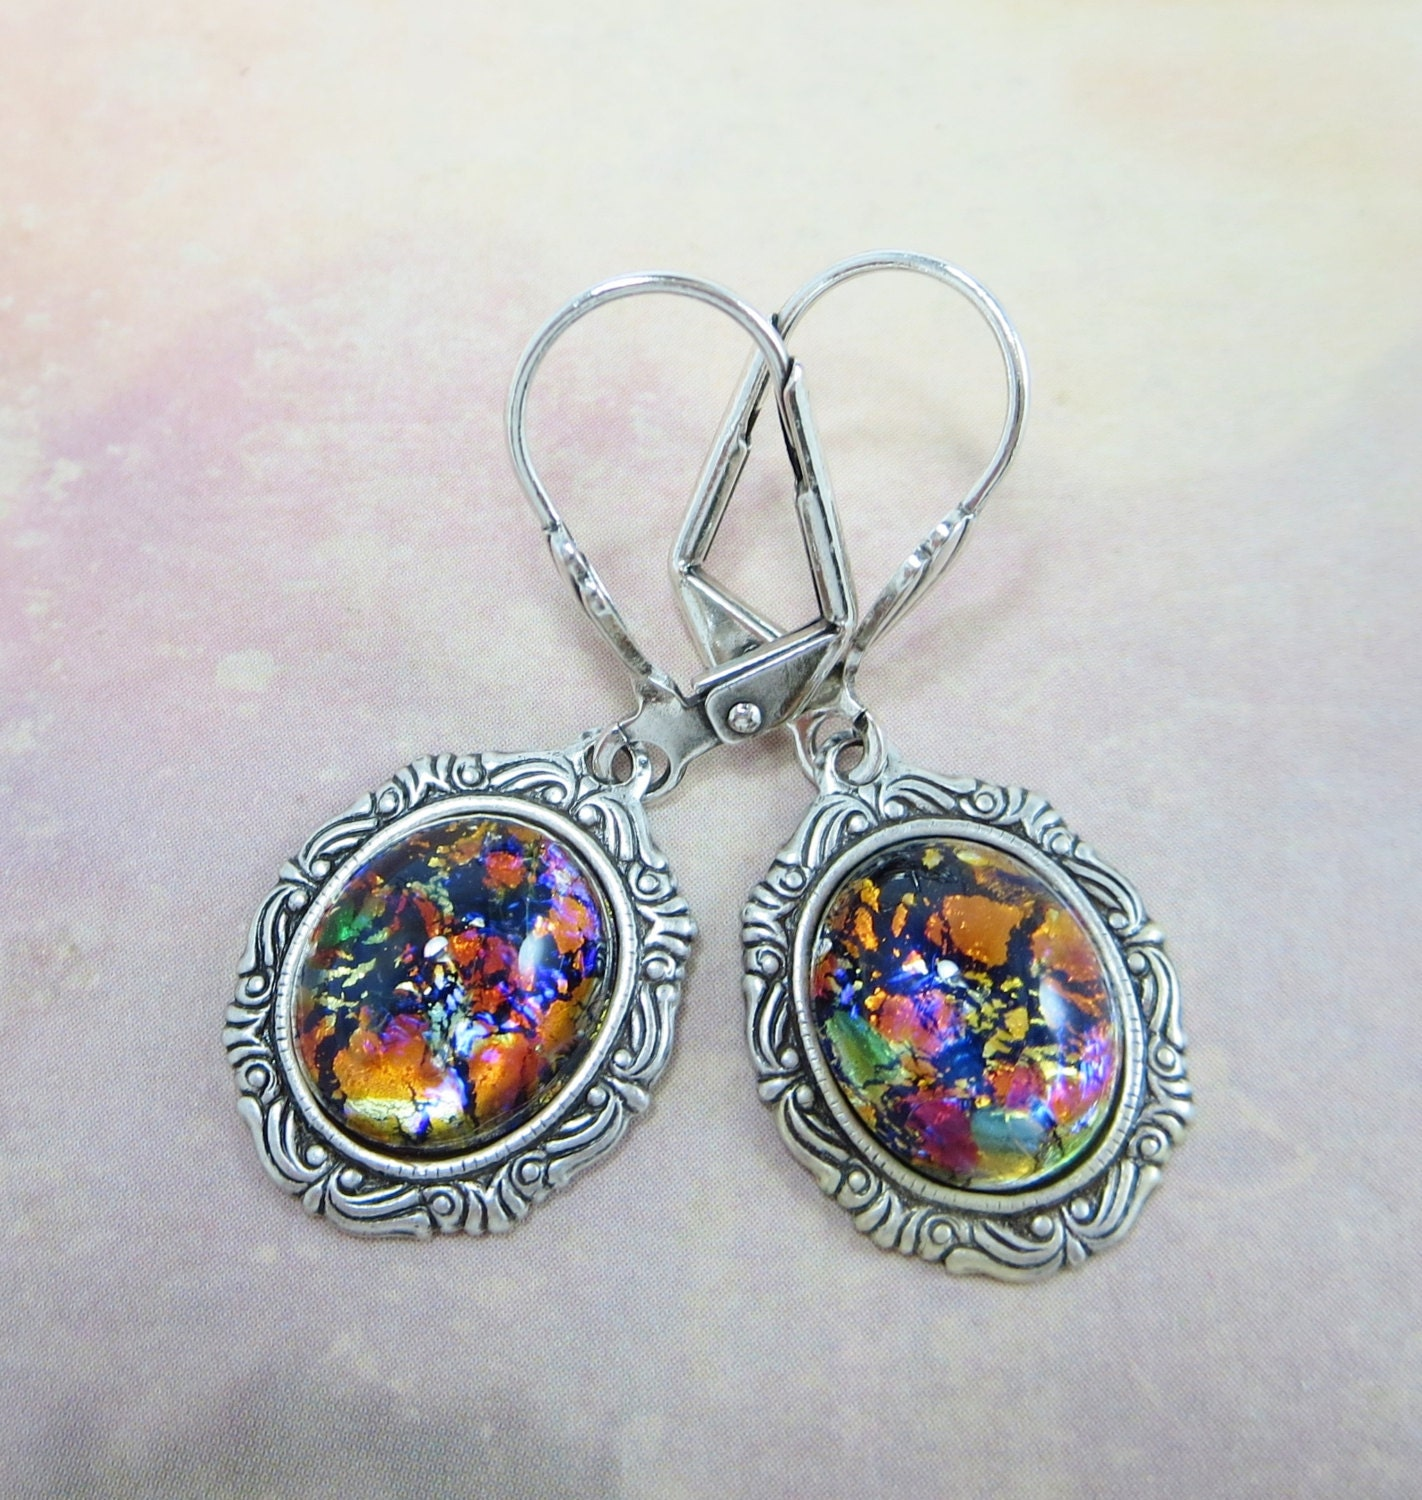 push change backs a drop x piercing product these sterling feature pierced for opal ears identity standard stunning and perfect easy or are simply opaltearsq large earrings to body dream silver faux